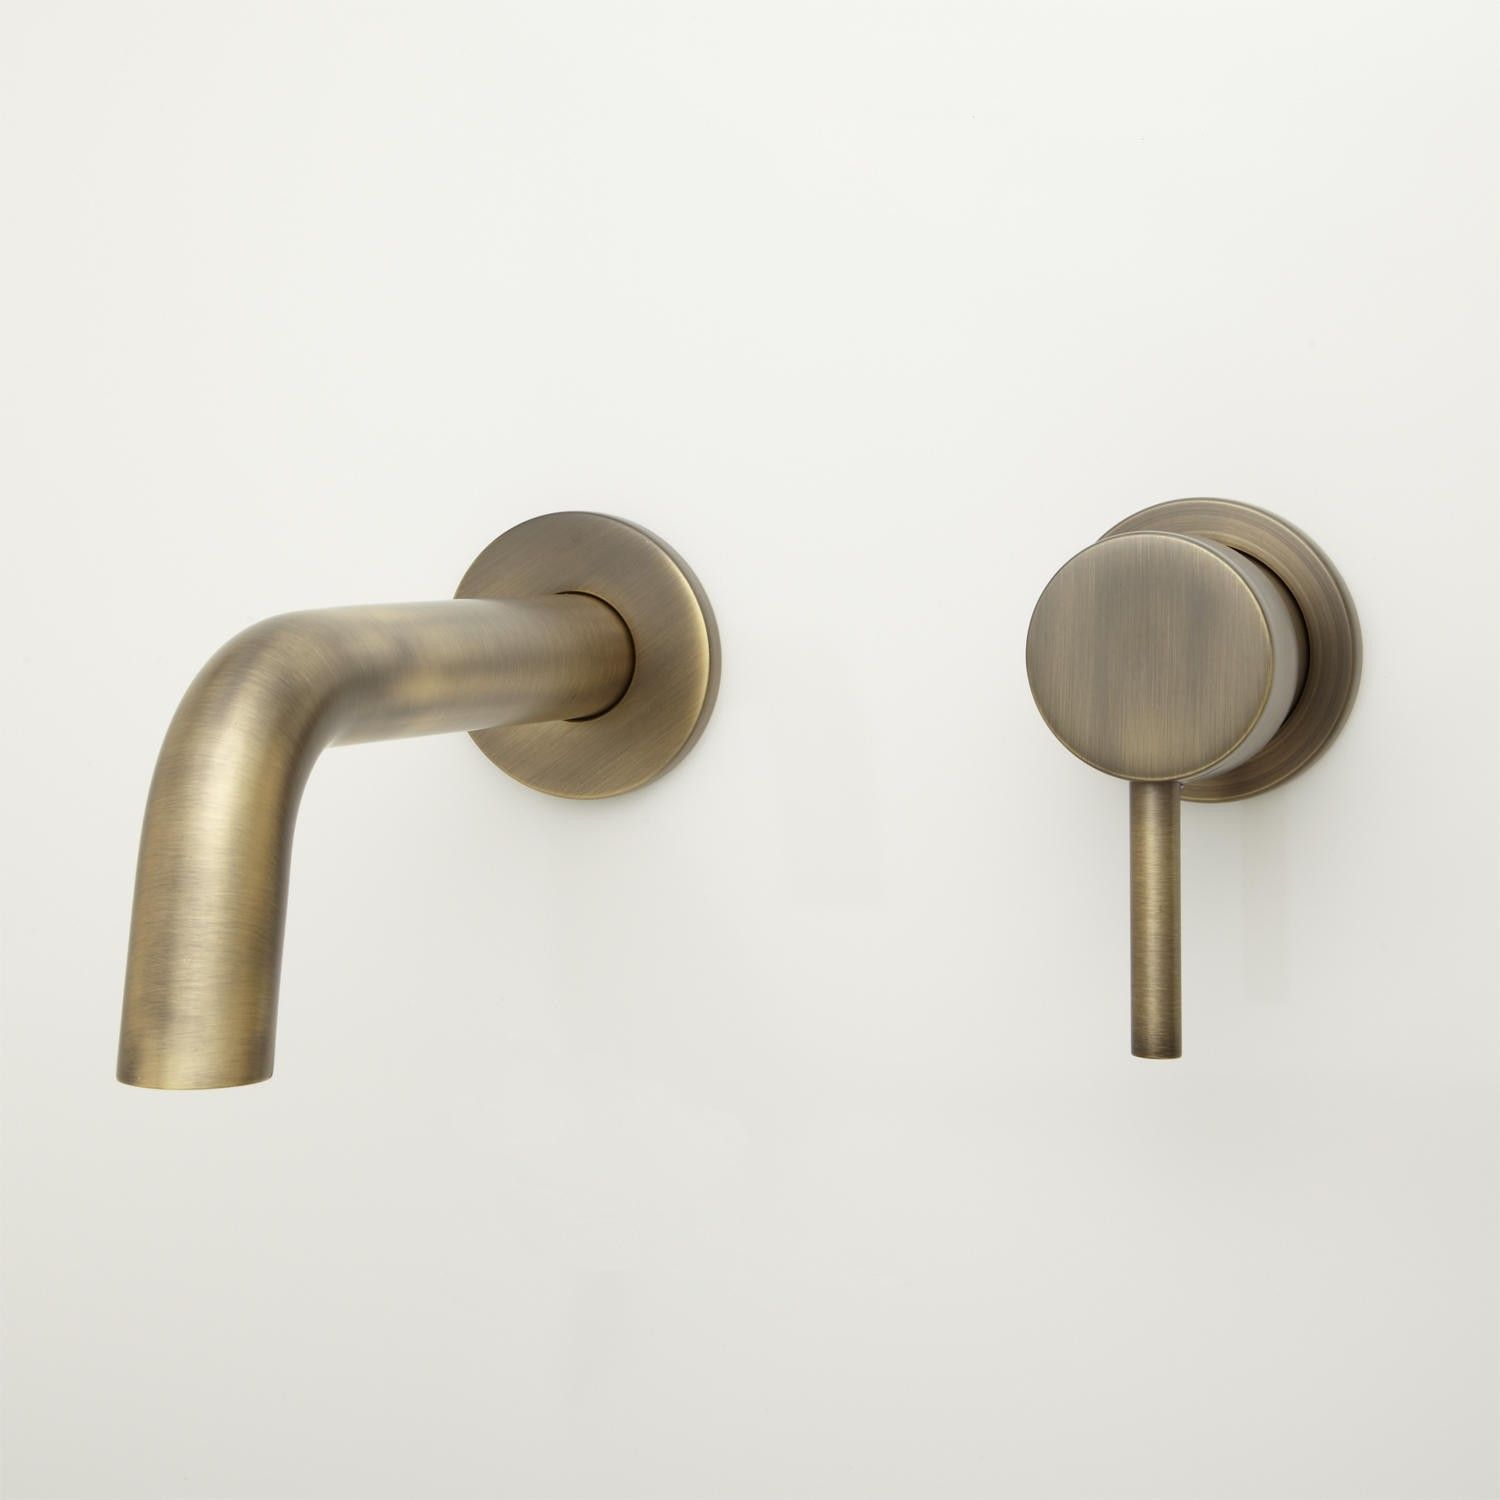 plumbing catalog detail collections tubs faucet west sized aged slope and l rejuvenation brass alt